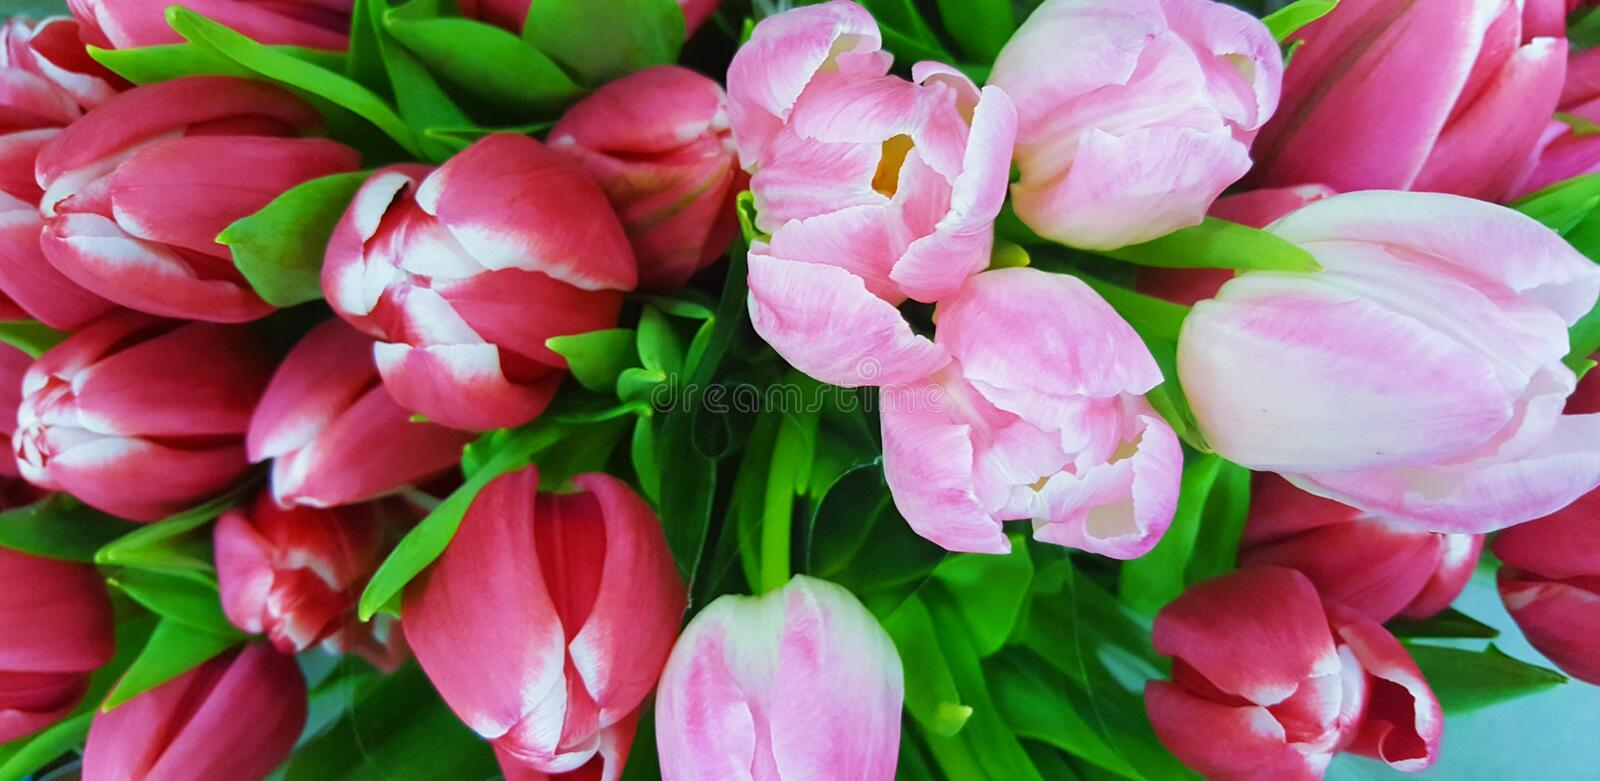 Flowers nature bloomig pink beautiful royalty free stock images